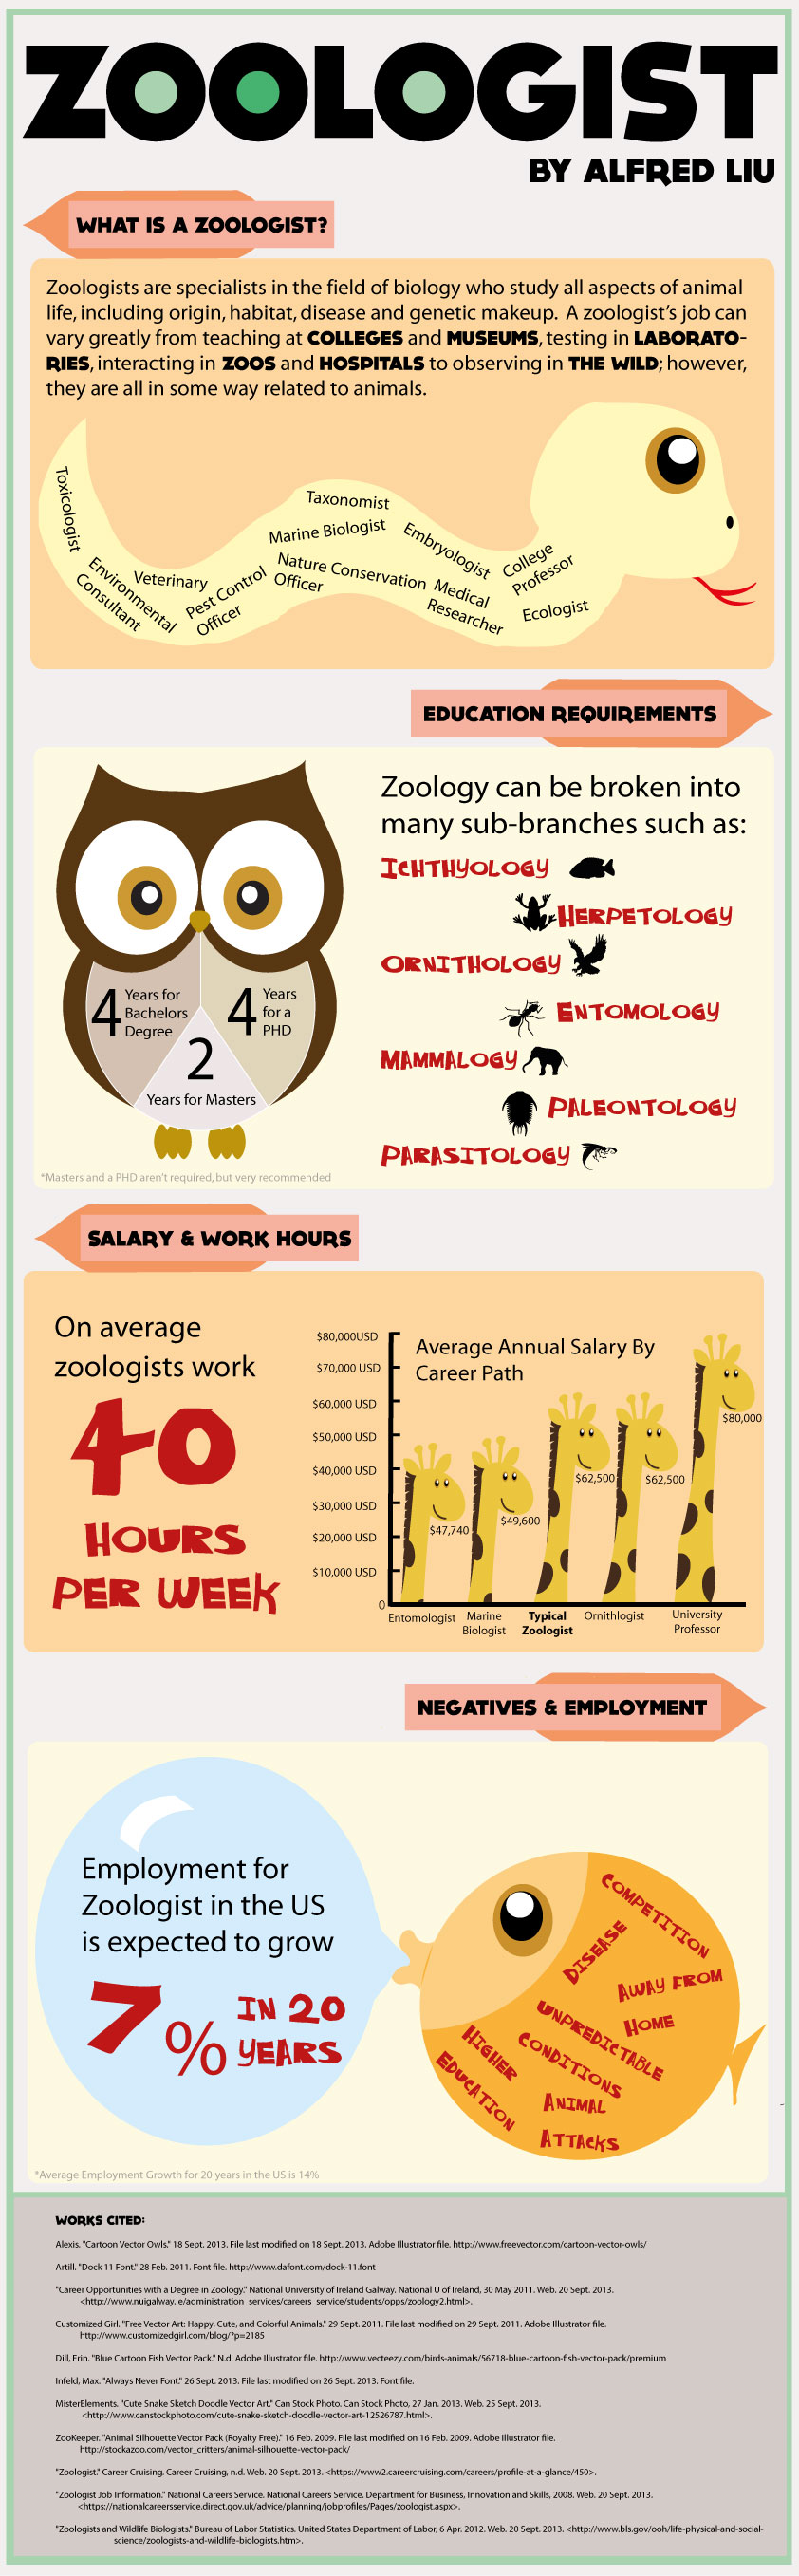 what is a zoologist cdnishk infographics design ibmyp cdnis what is a zoologist cdnishk infographics design ibmyp